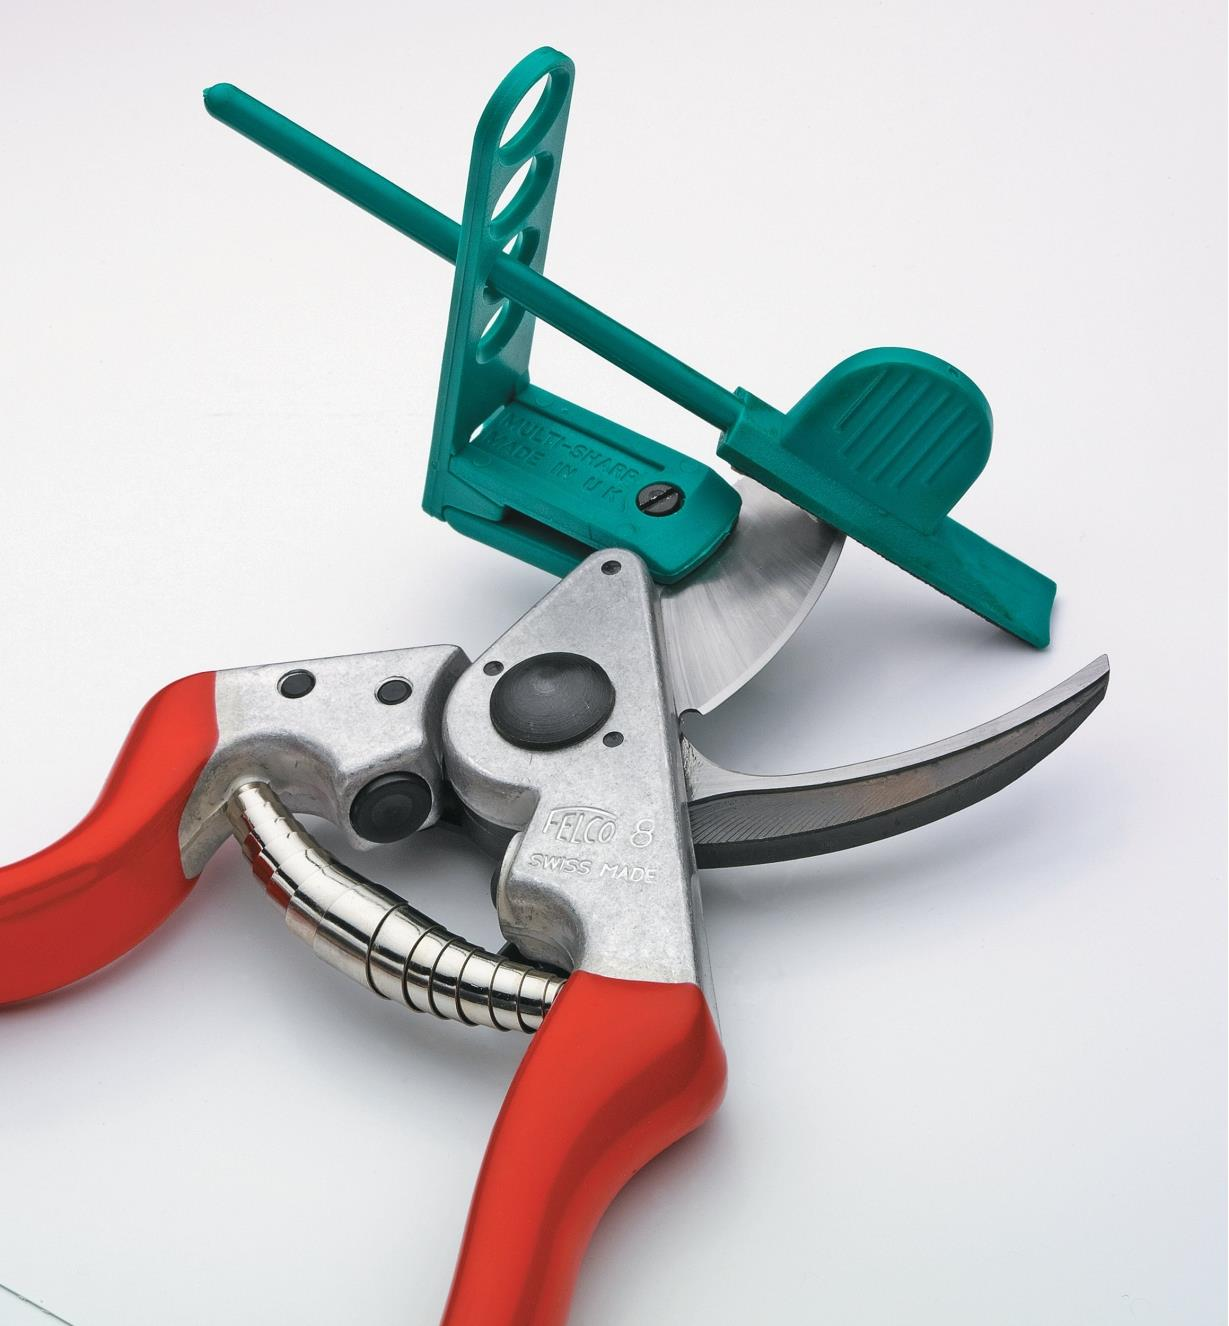 Pruner Sharpener clamped to a hand pruner blade